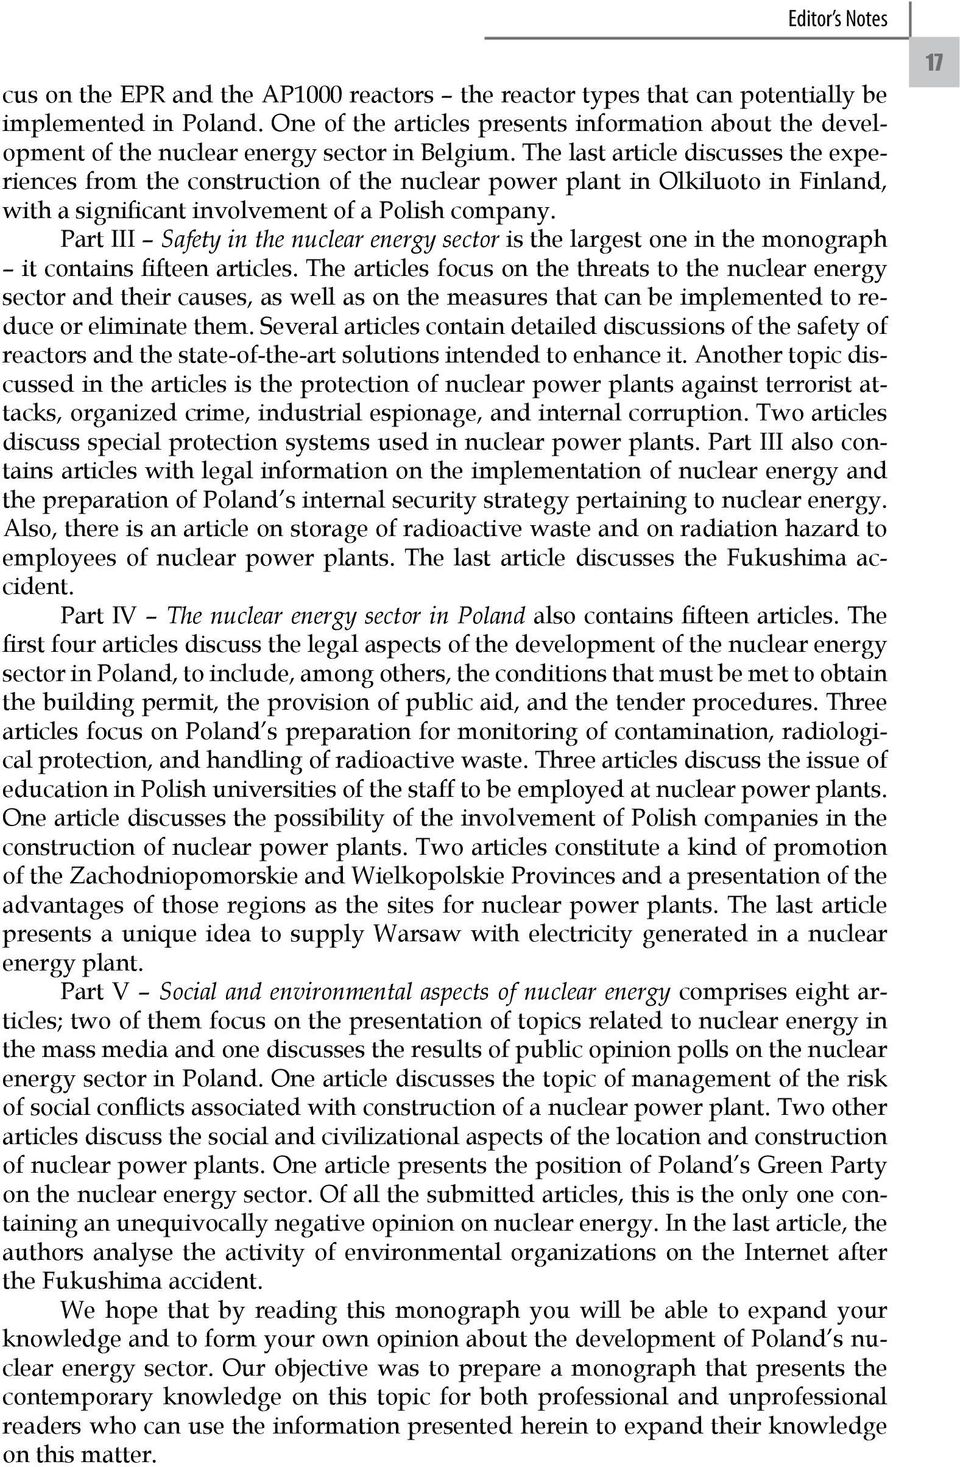 The last article discusses the experiences from the construction of the nuclear power plant in Olkiluoto in Finland, with a significant involvement of a Polish company.